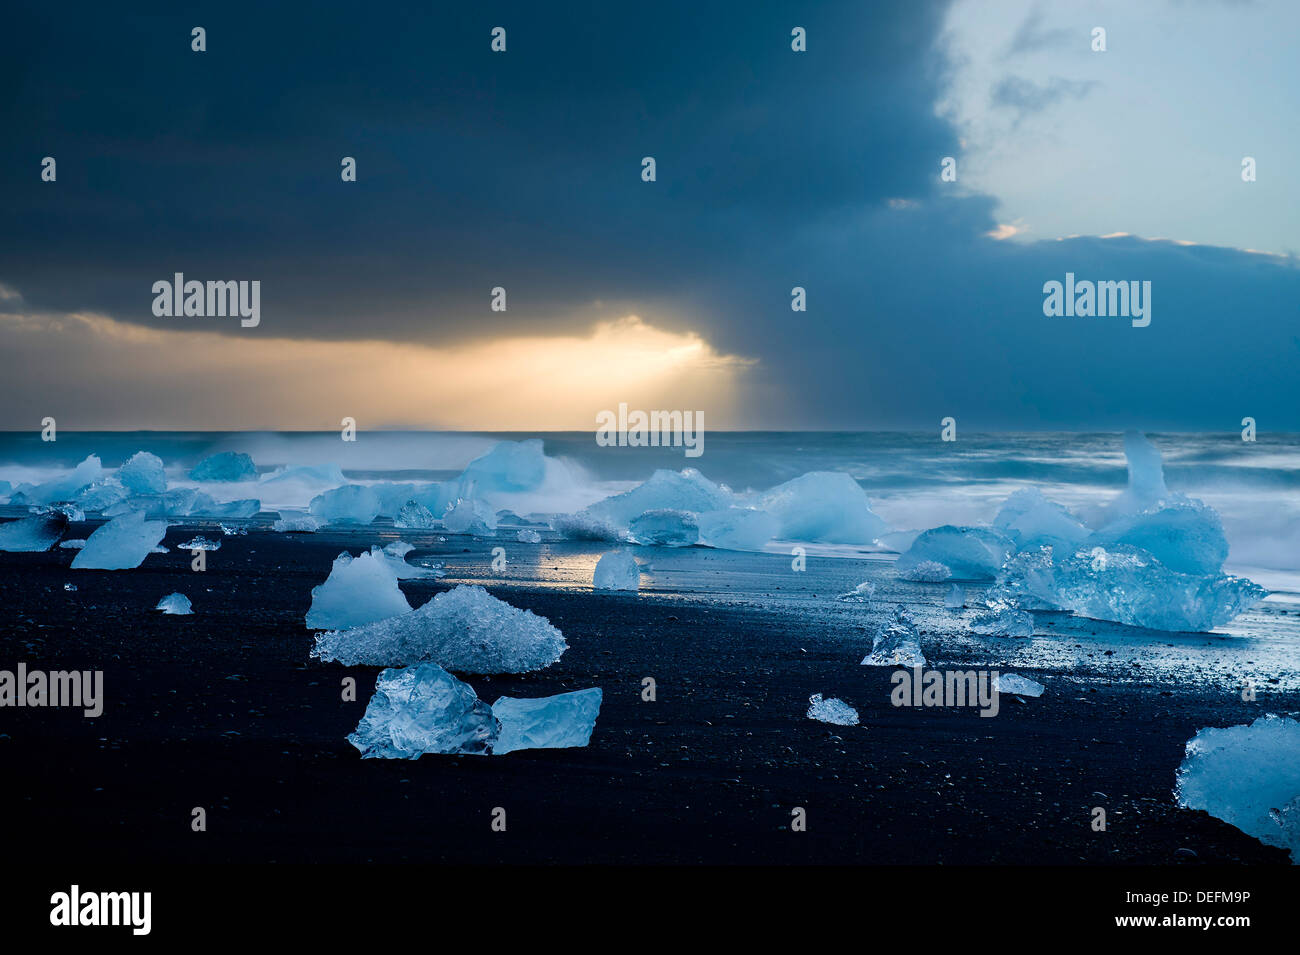 Icebergs on Beach, Jokulsarlon, Iceland, Polar Regions Stock Photo